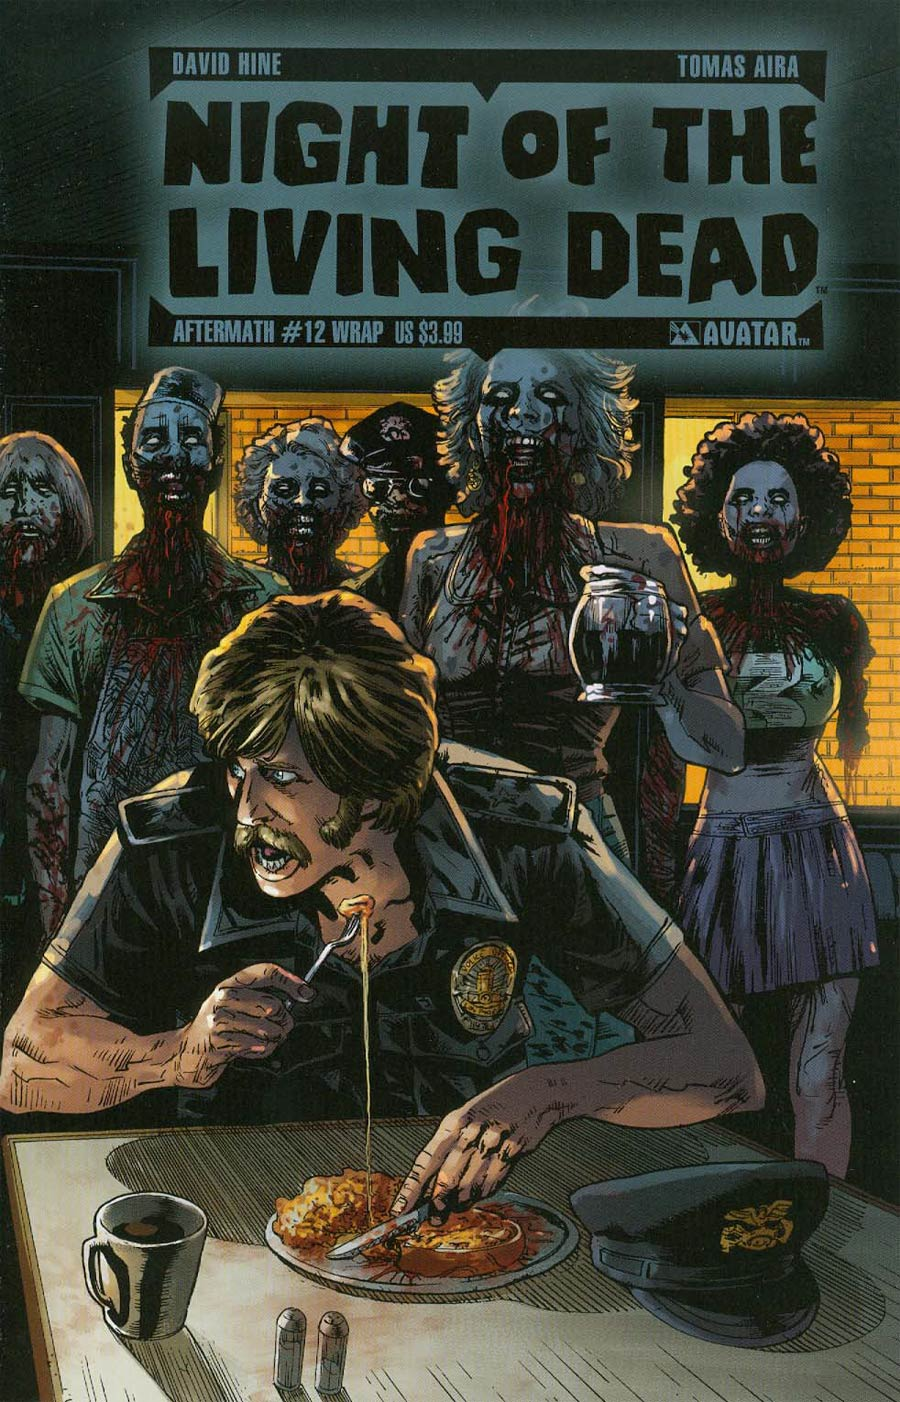 Night Of The Living Dead Aftermath #12 Cover B Wraparound Cover